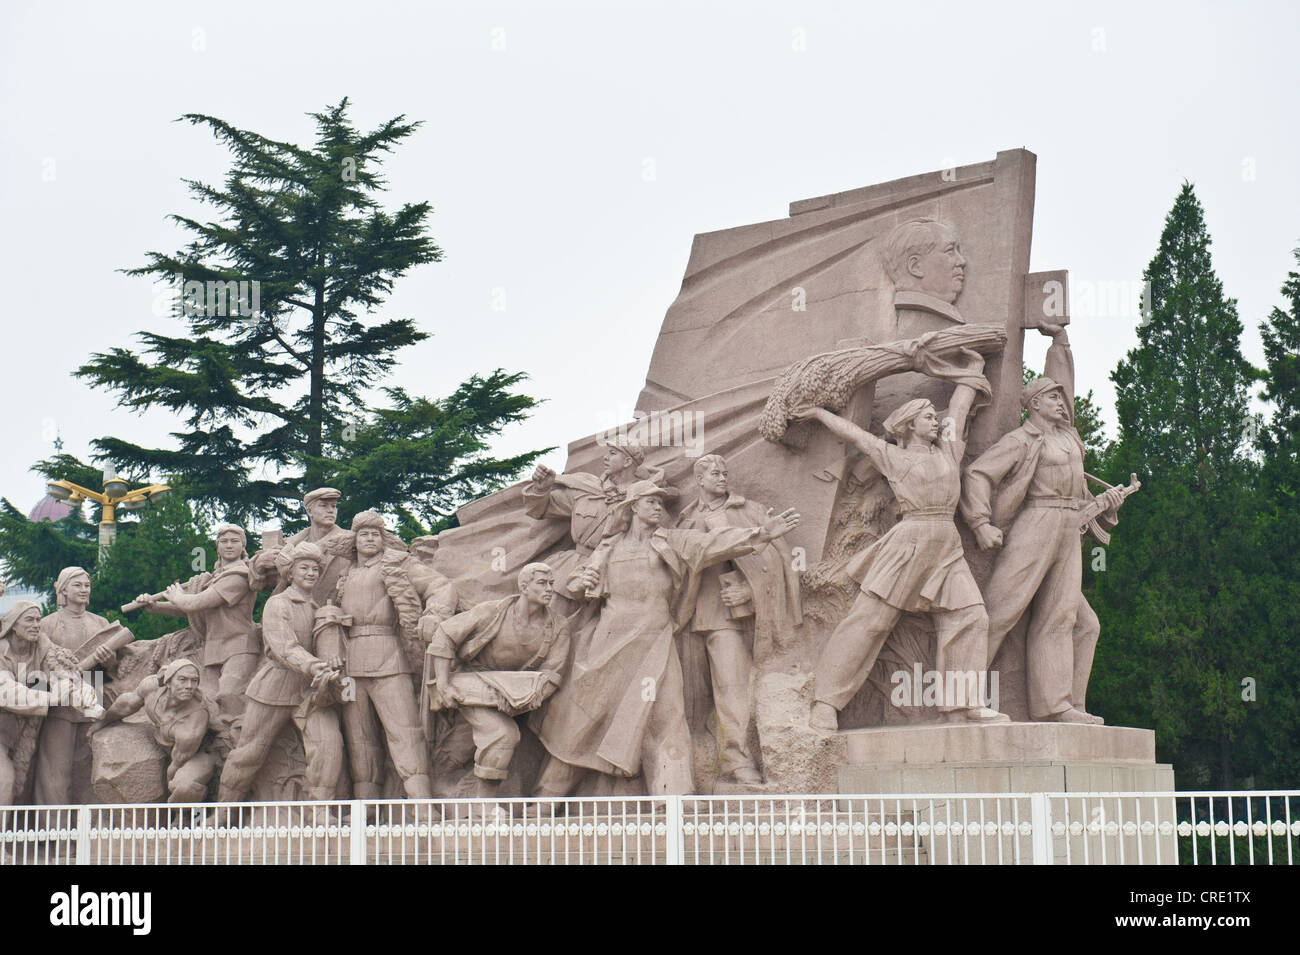 Communist stone monument, people with the flag of Mao Zedong, Tiananmen Square, Tiananmen Square, Beijing - Stock Image